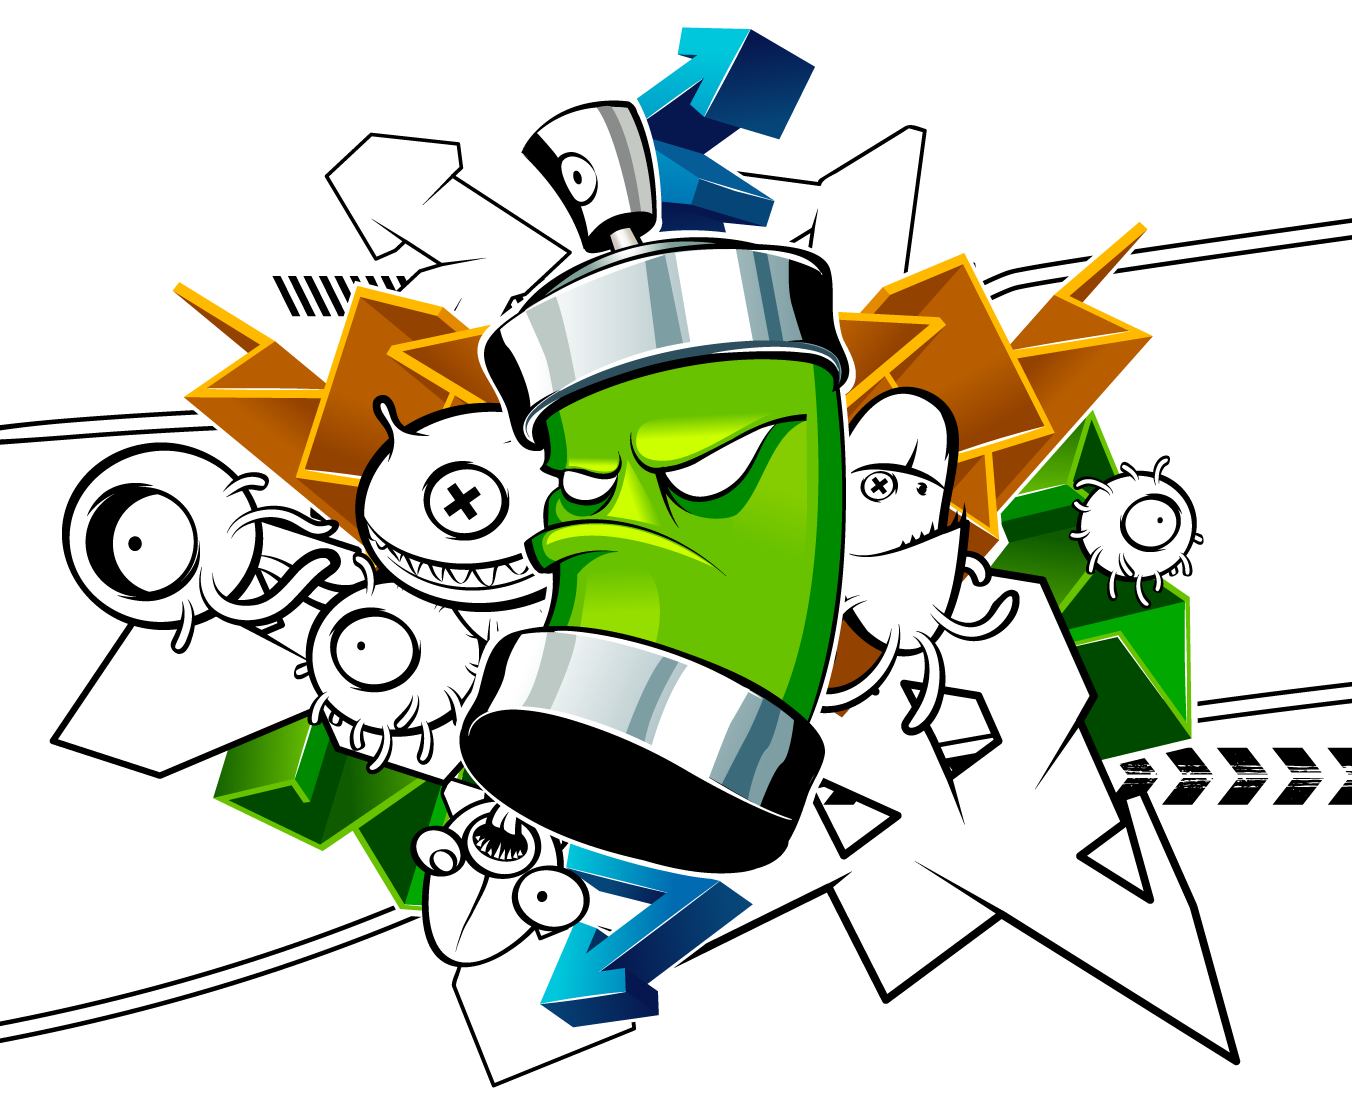 Spray graffiti png. Aerosol drawing cartoon paint